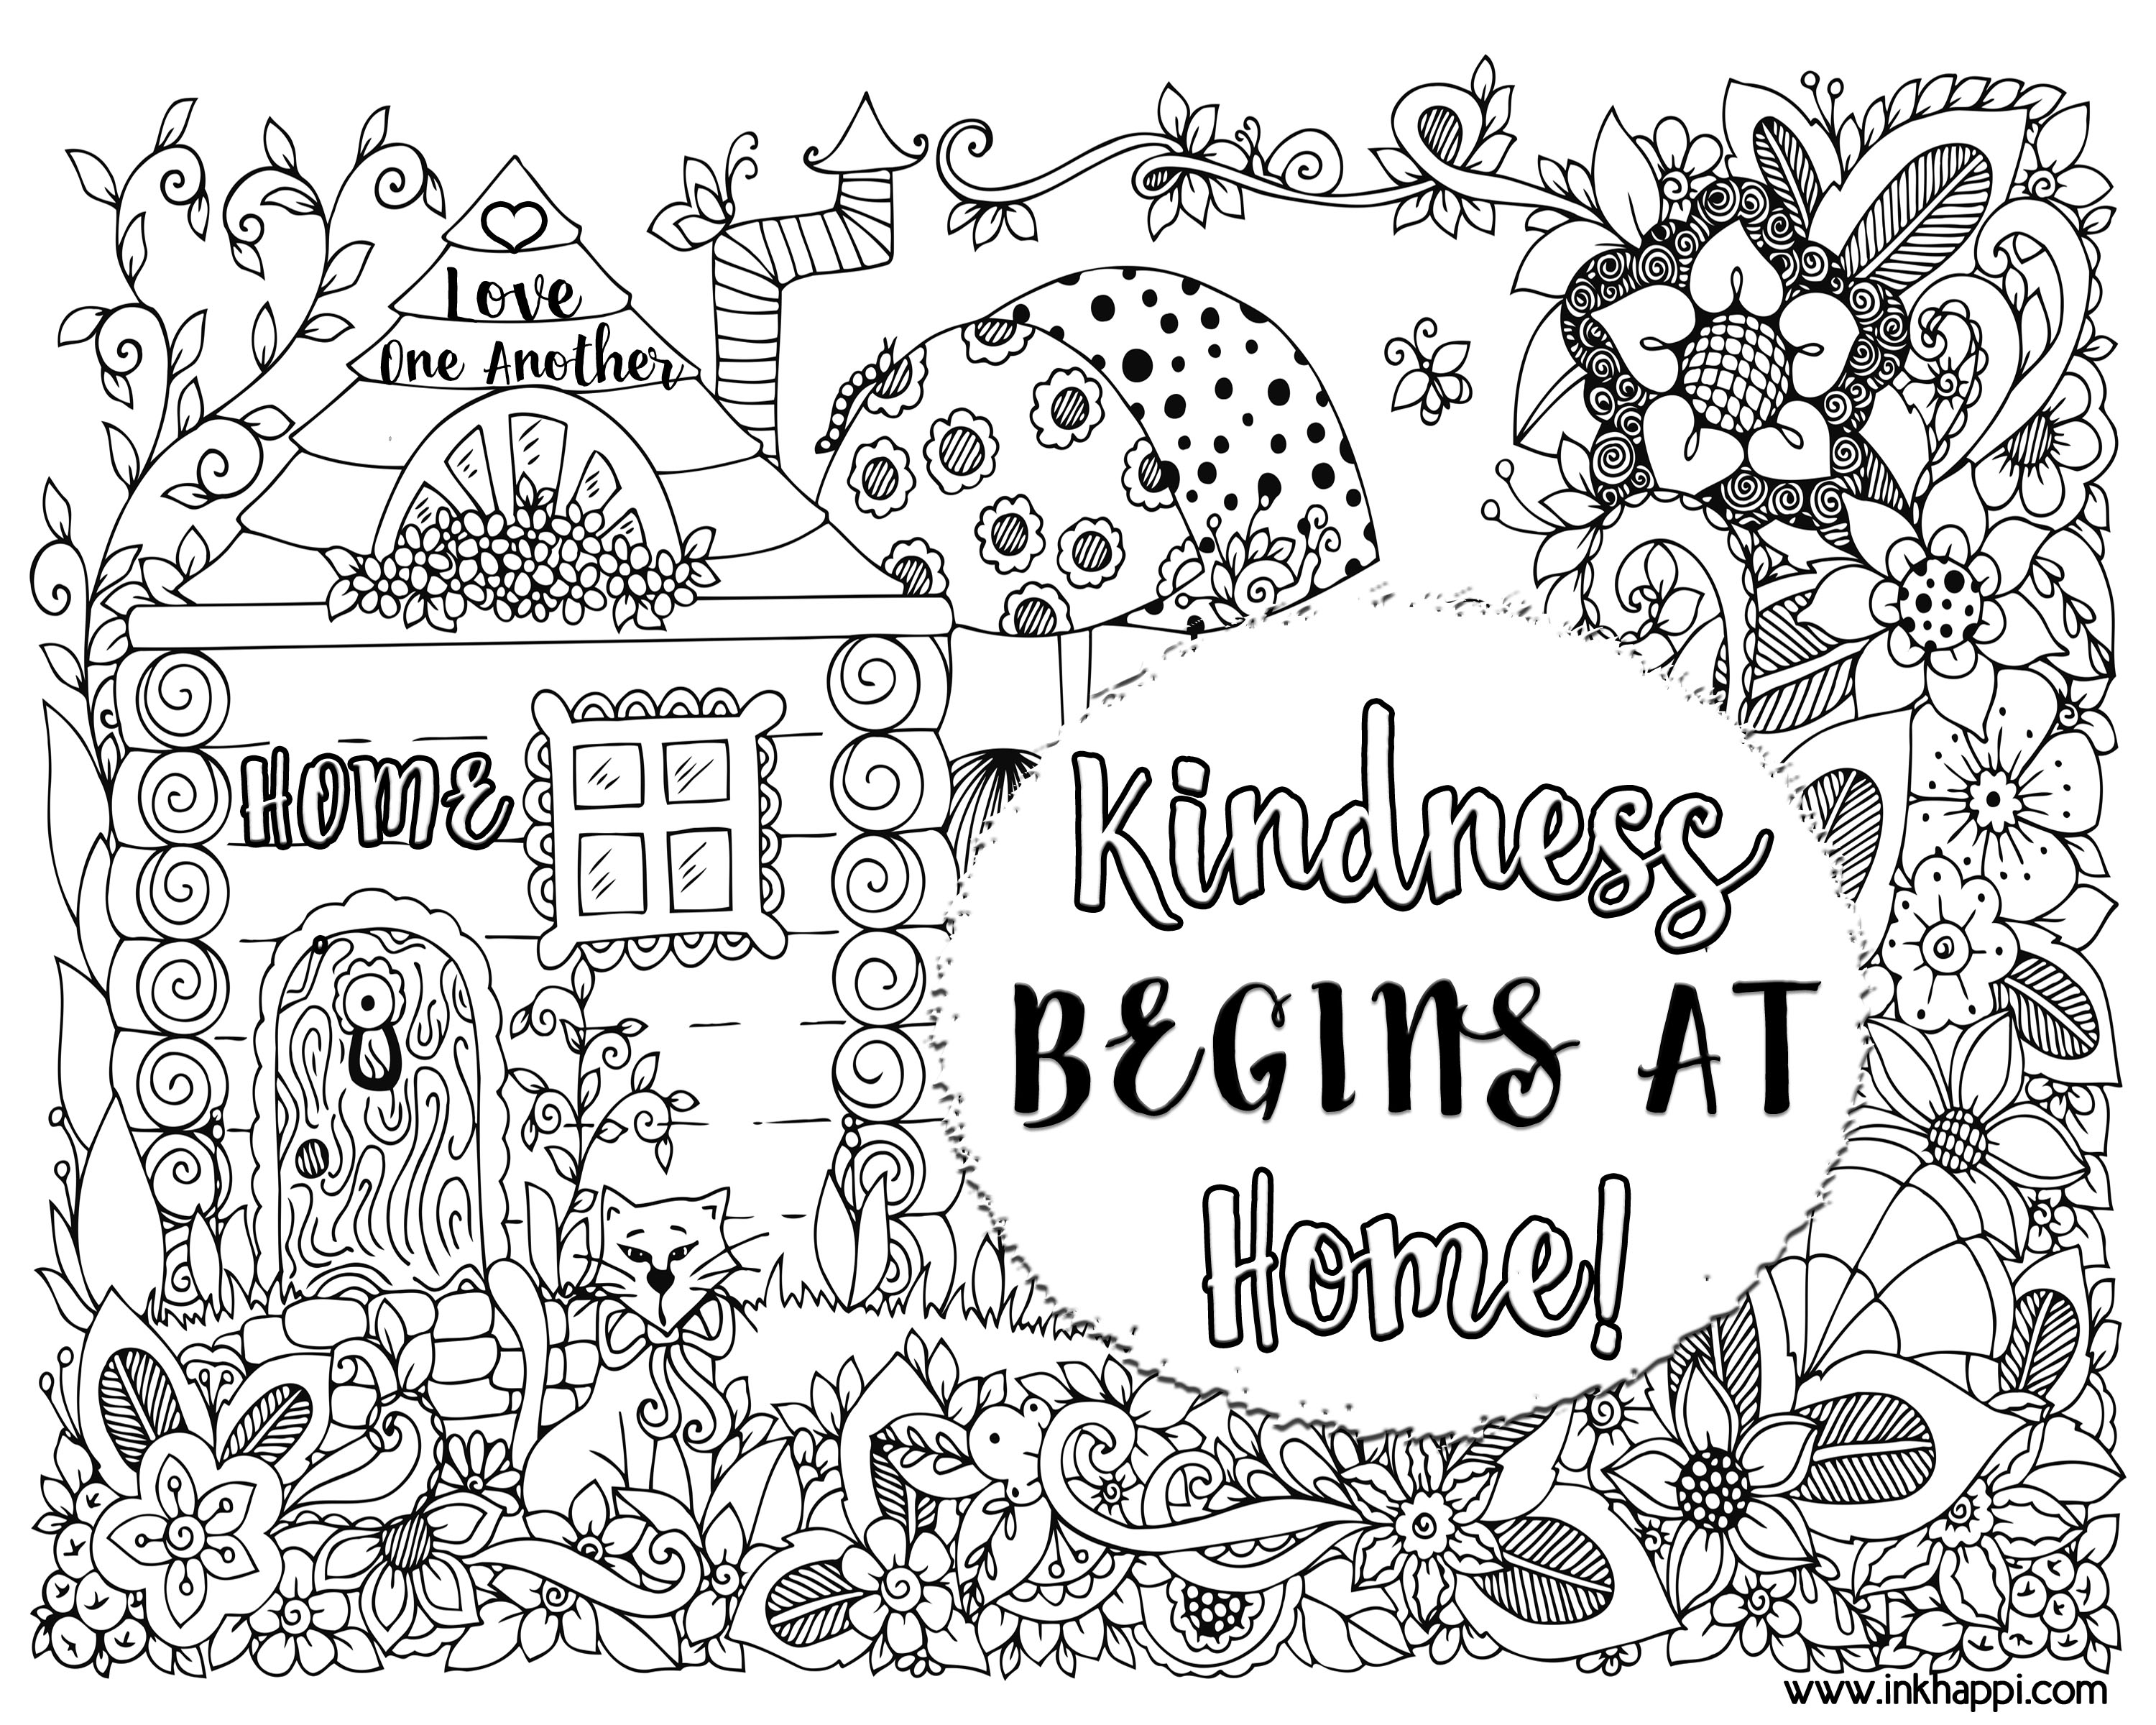 kindness begins at home a coloring page and a message inkhappi